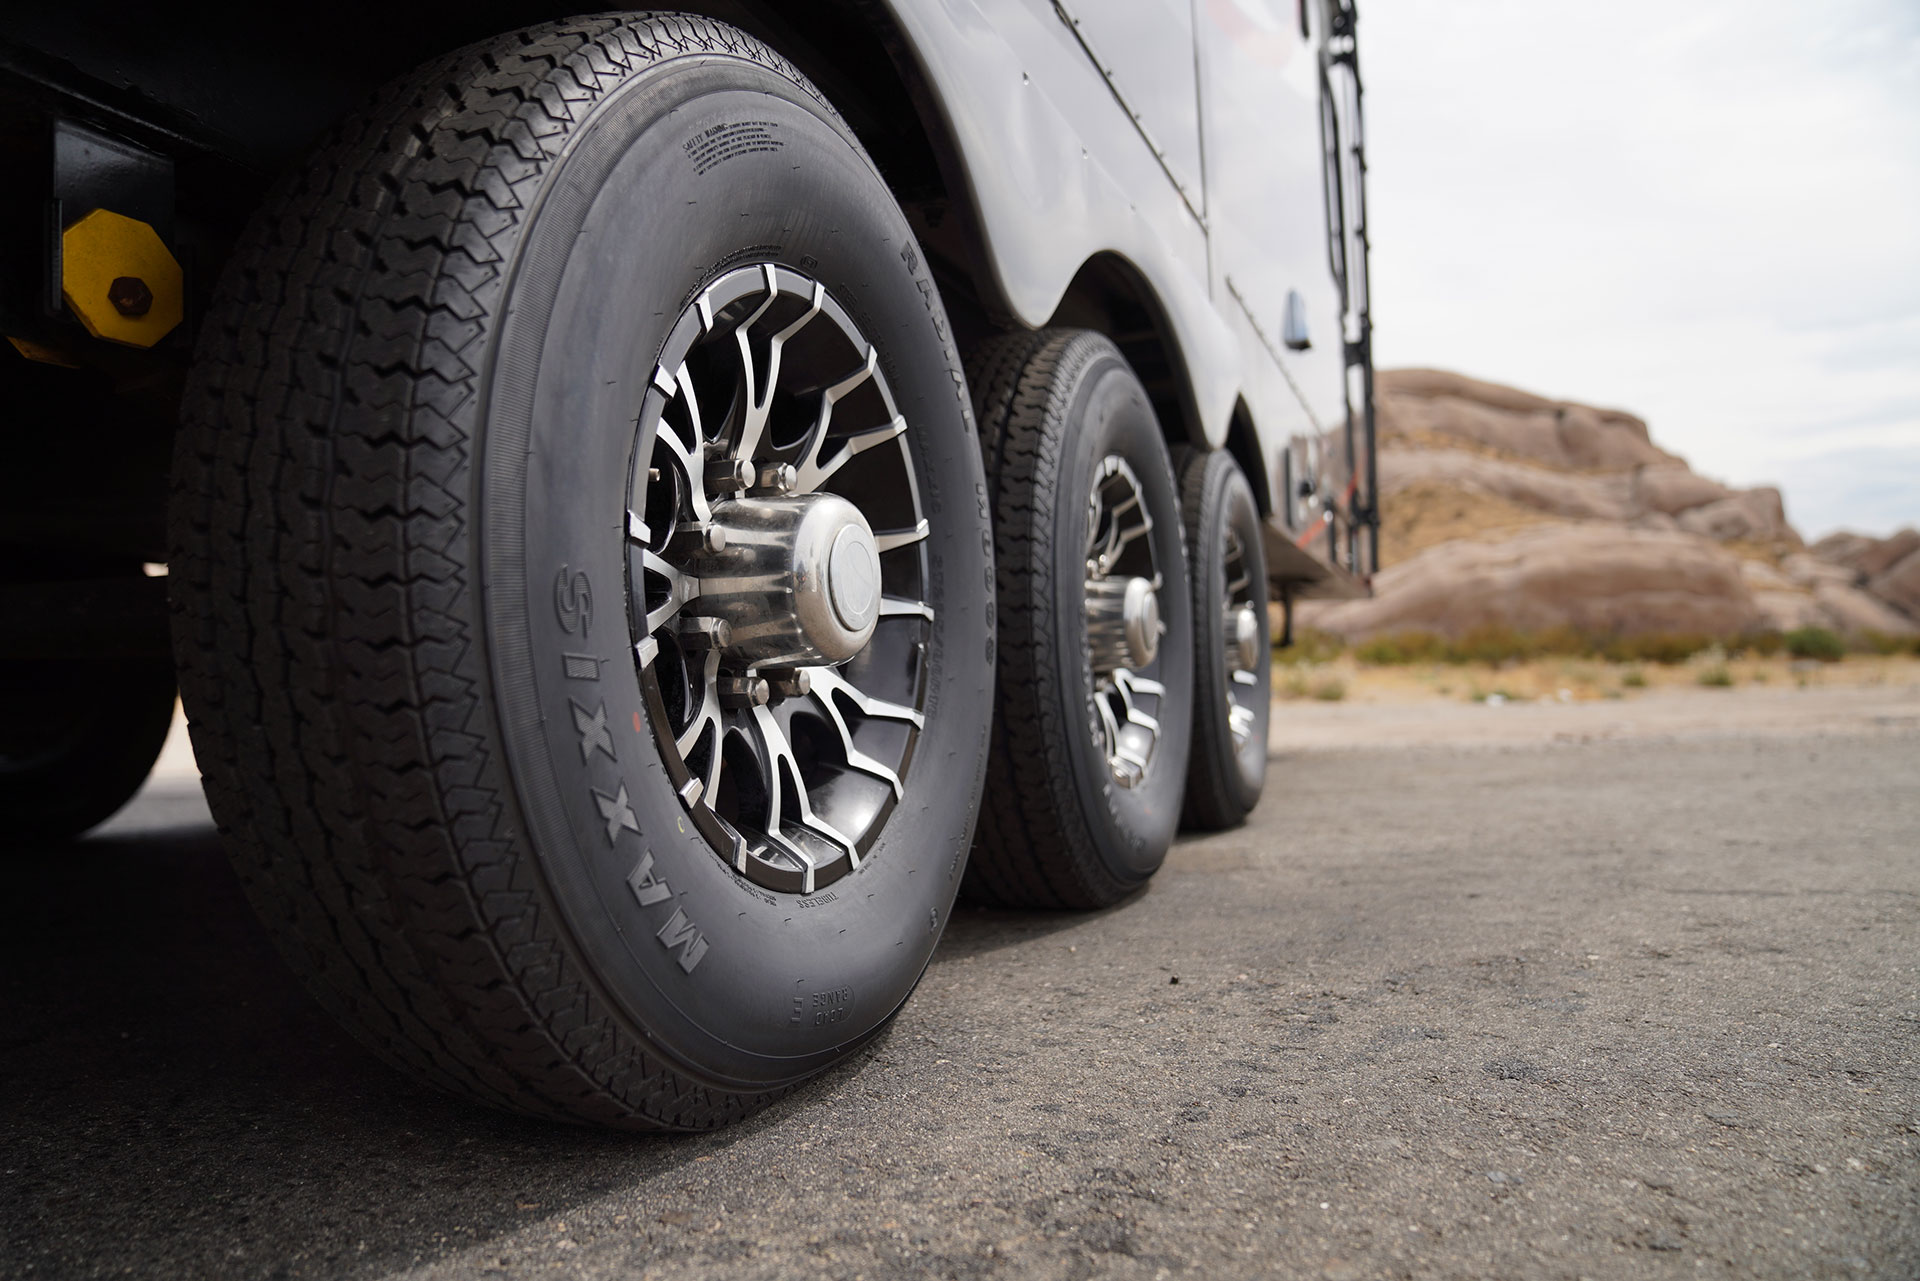 Maxxis tires on trailer